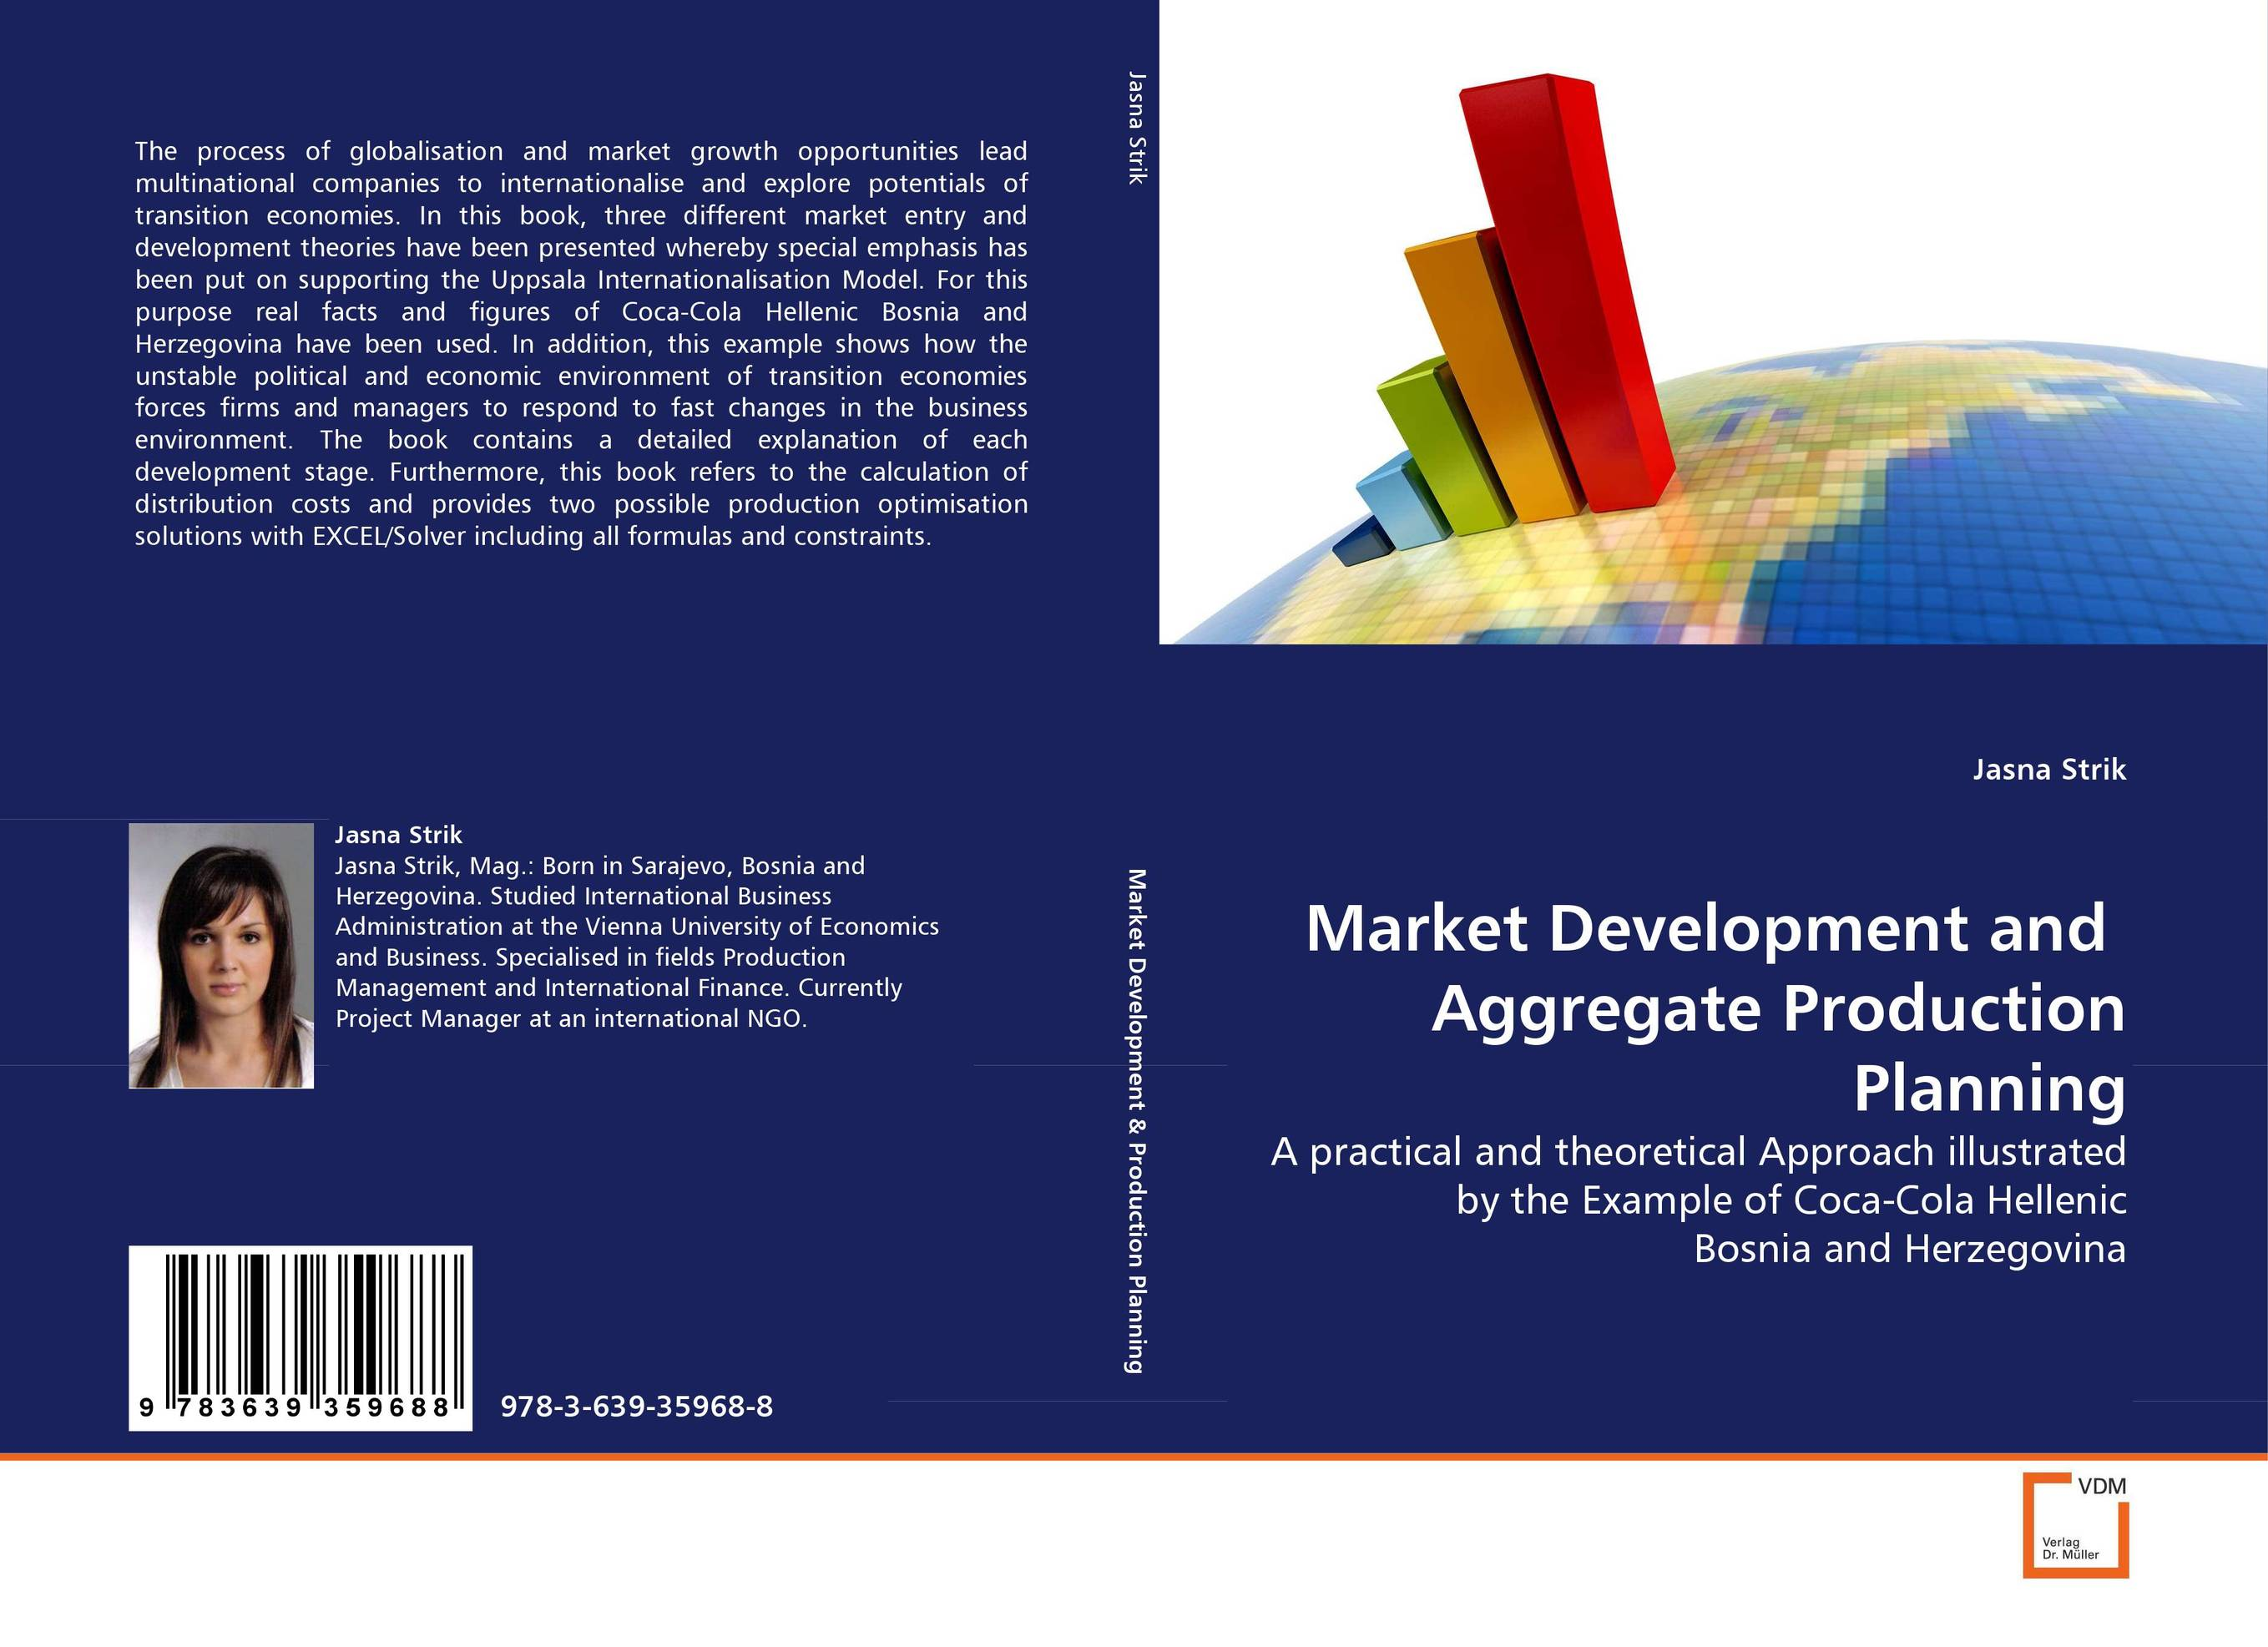 Market Development and  Aggregate Production Planning